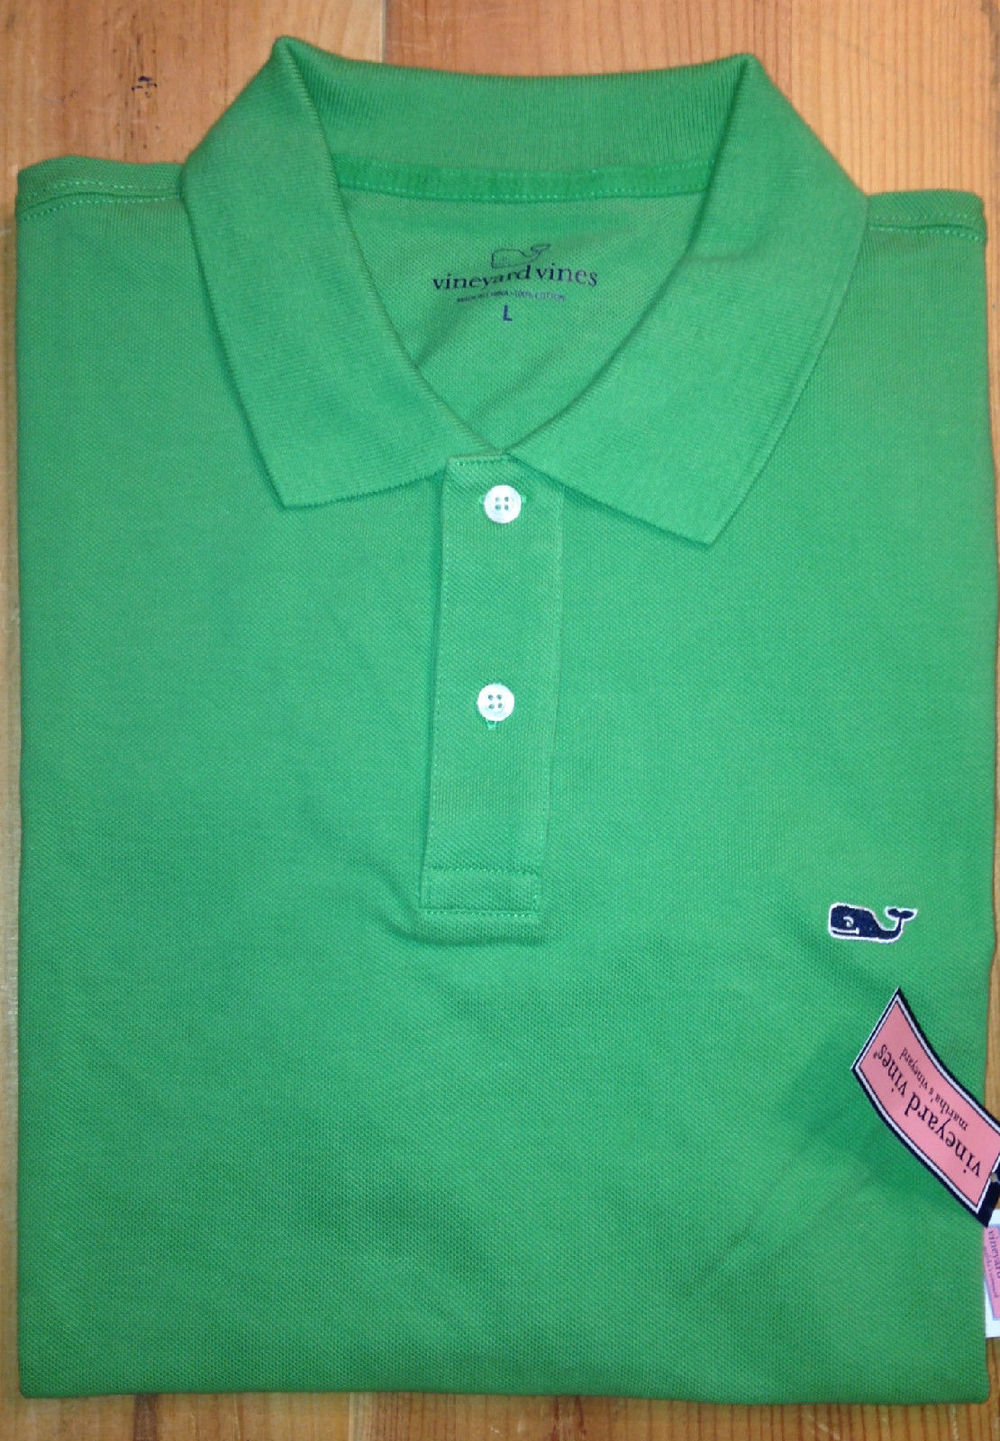 The USA famous whale brand men polo shirt cotton solid color.